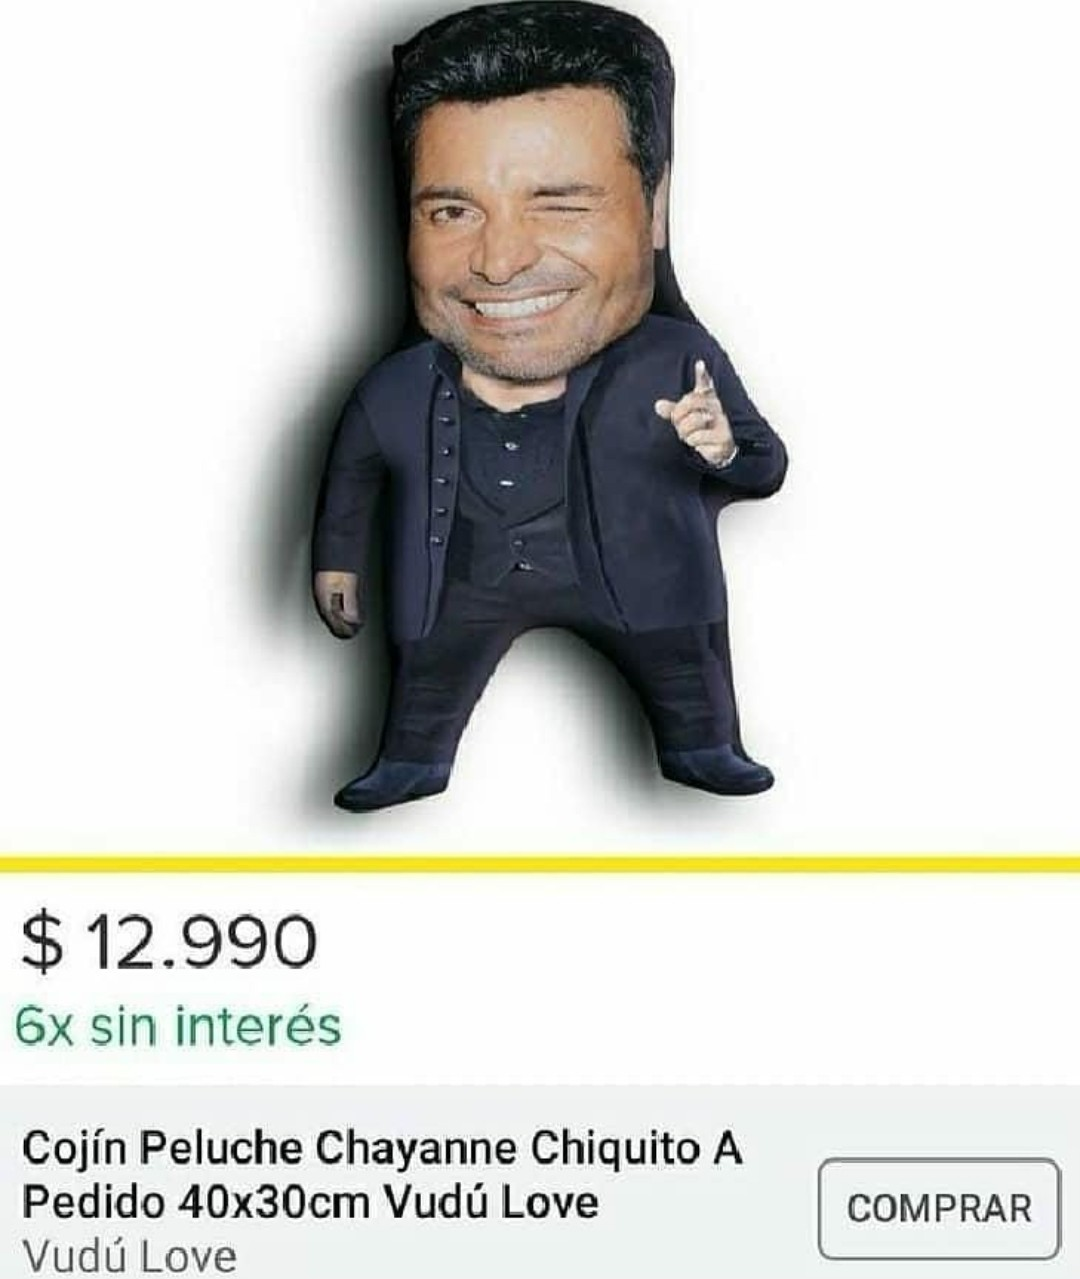 Chayanne chiquito - meme